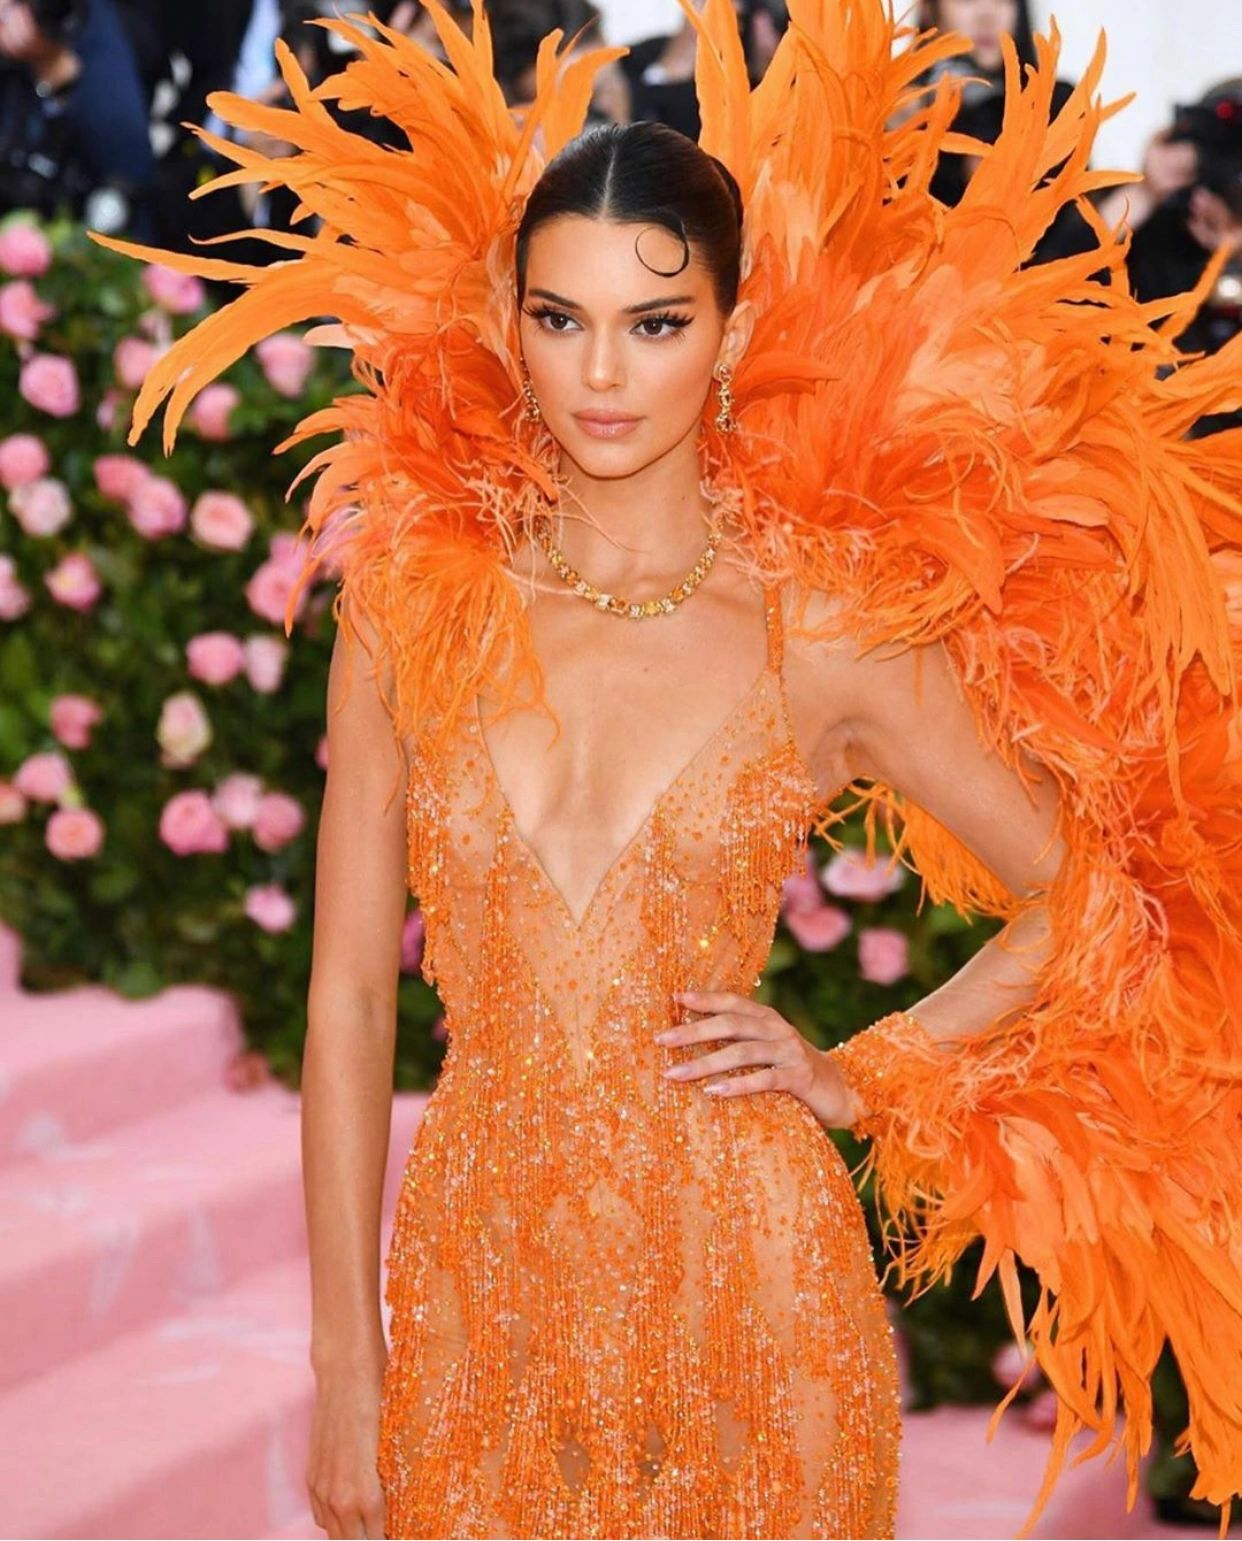 Met Gala, 2019: Kendall Jenner. (Getty Images)